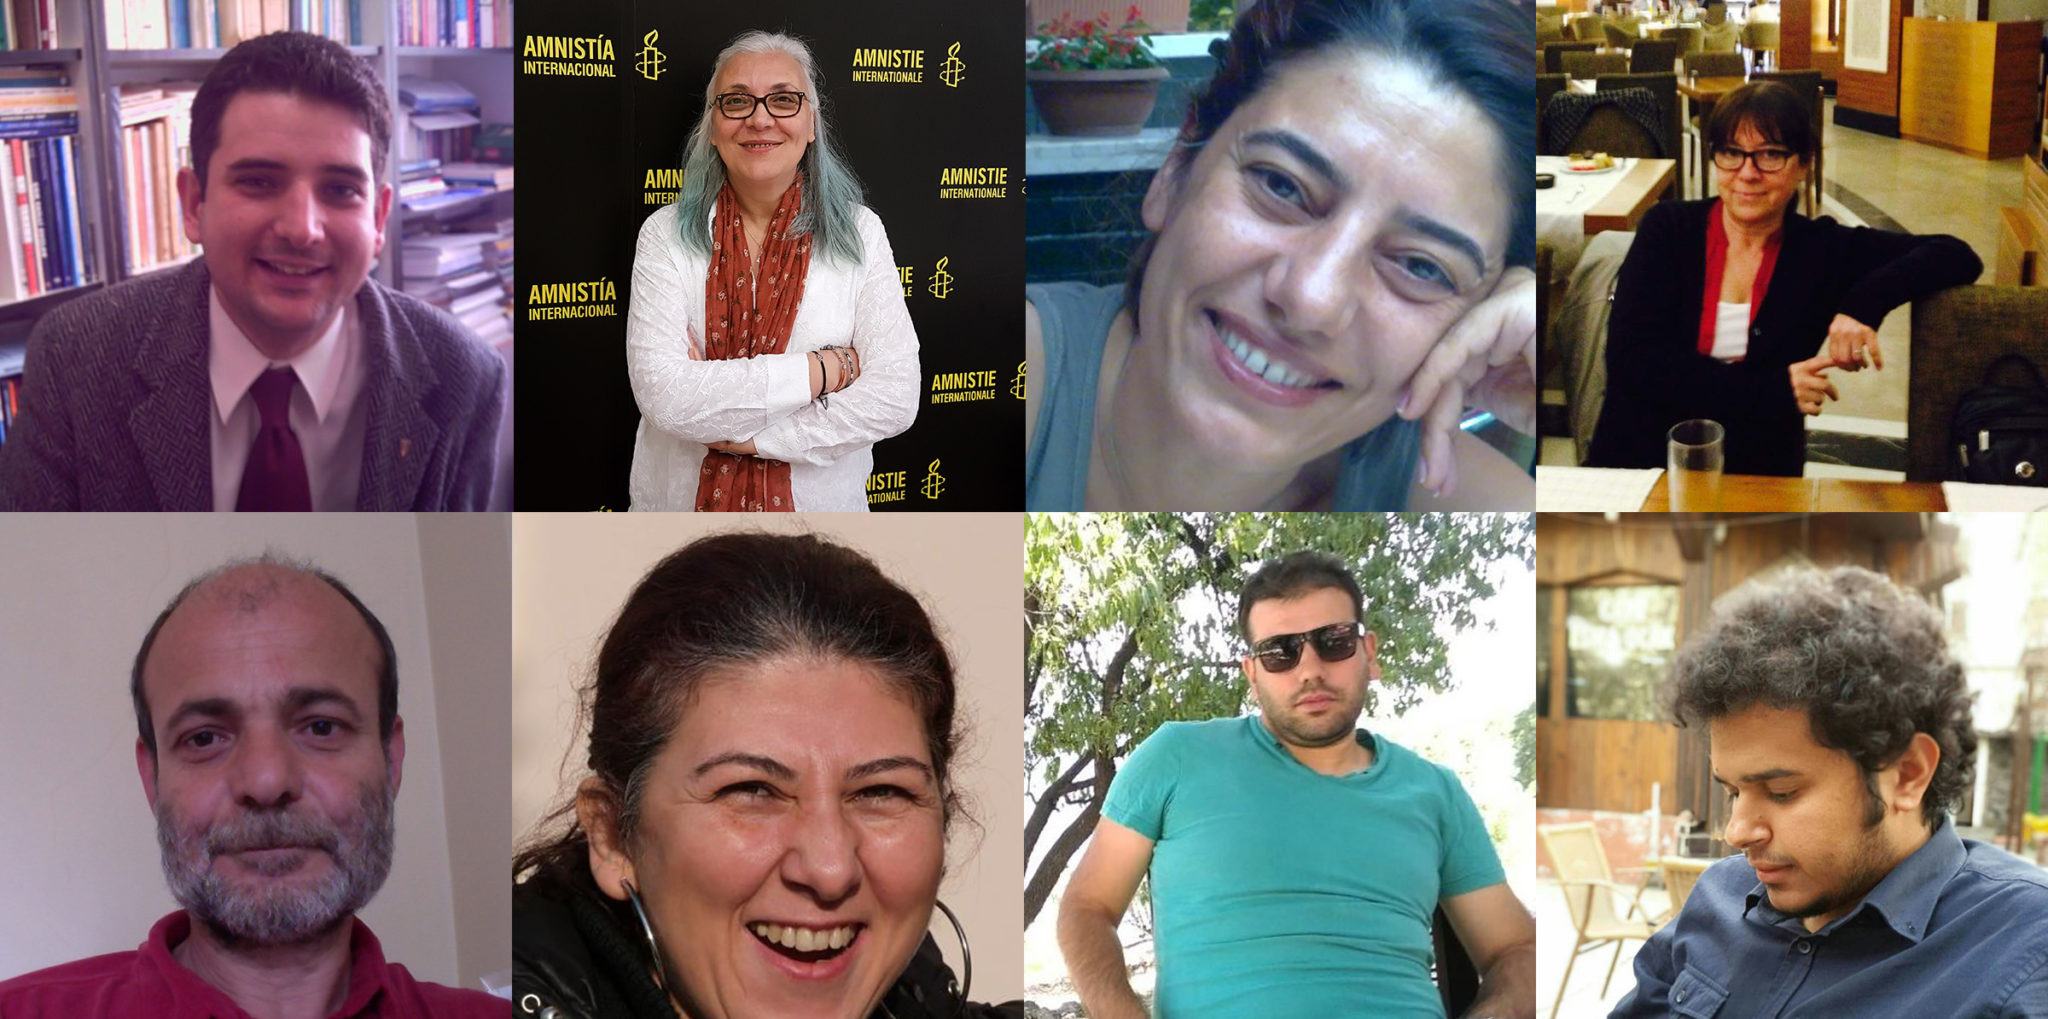 Turkey must release human rights defenders, still in jail after 100 days